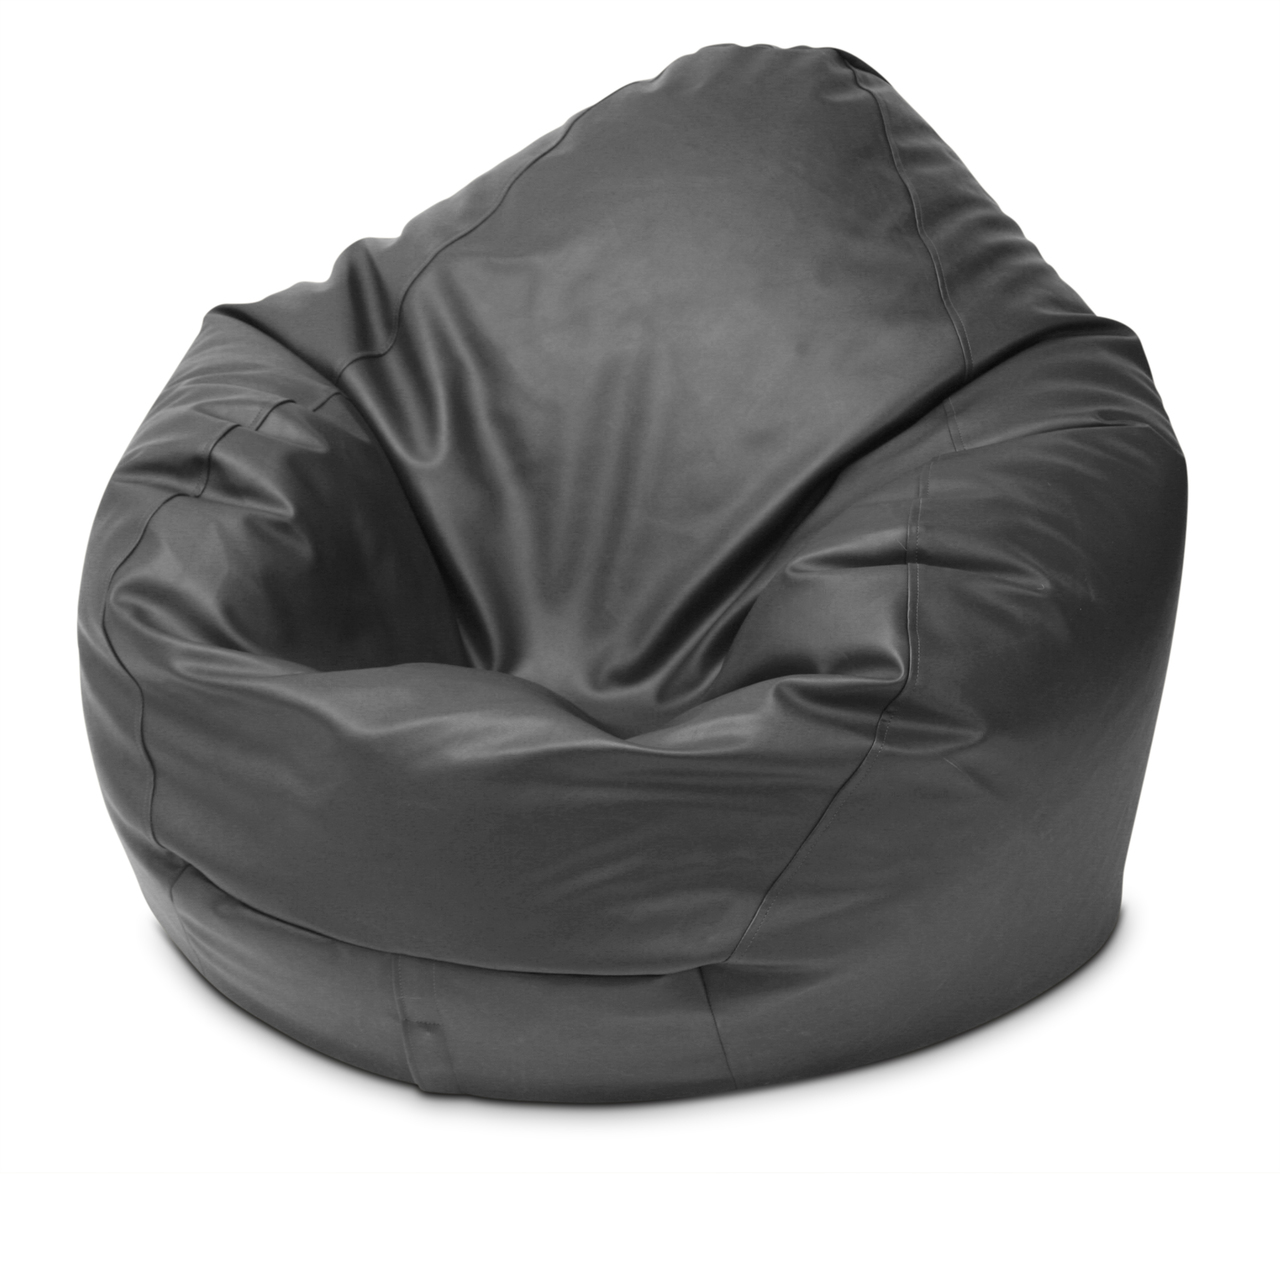 Classic King Size Bean Bag in thunder